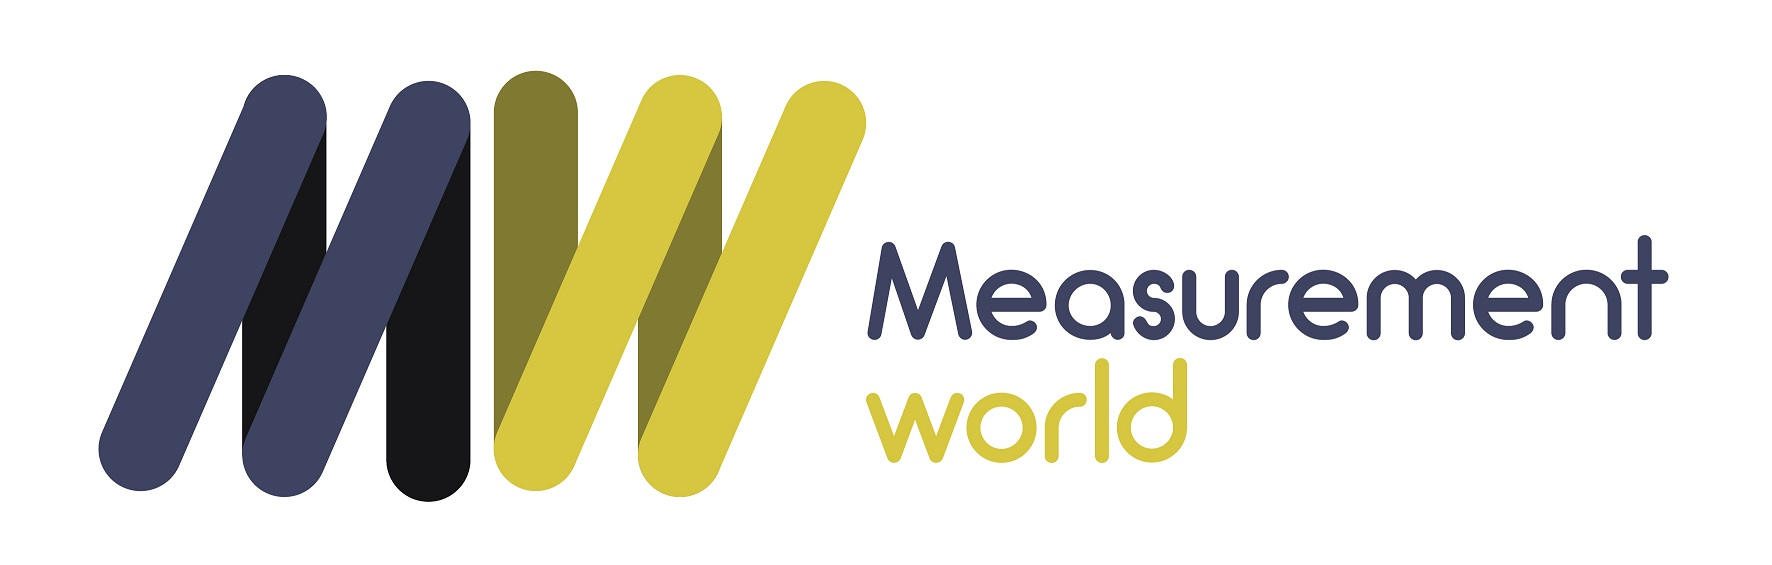 Measurement World 2020 By using this link you leave our site